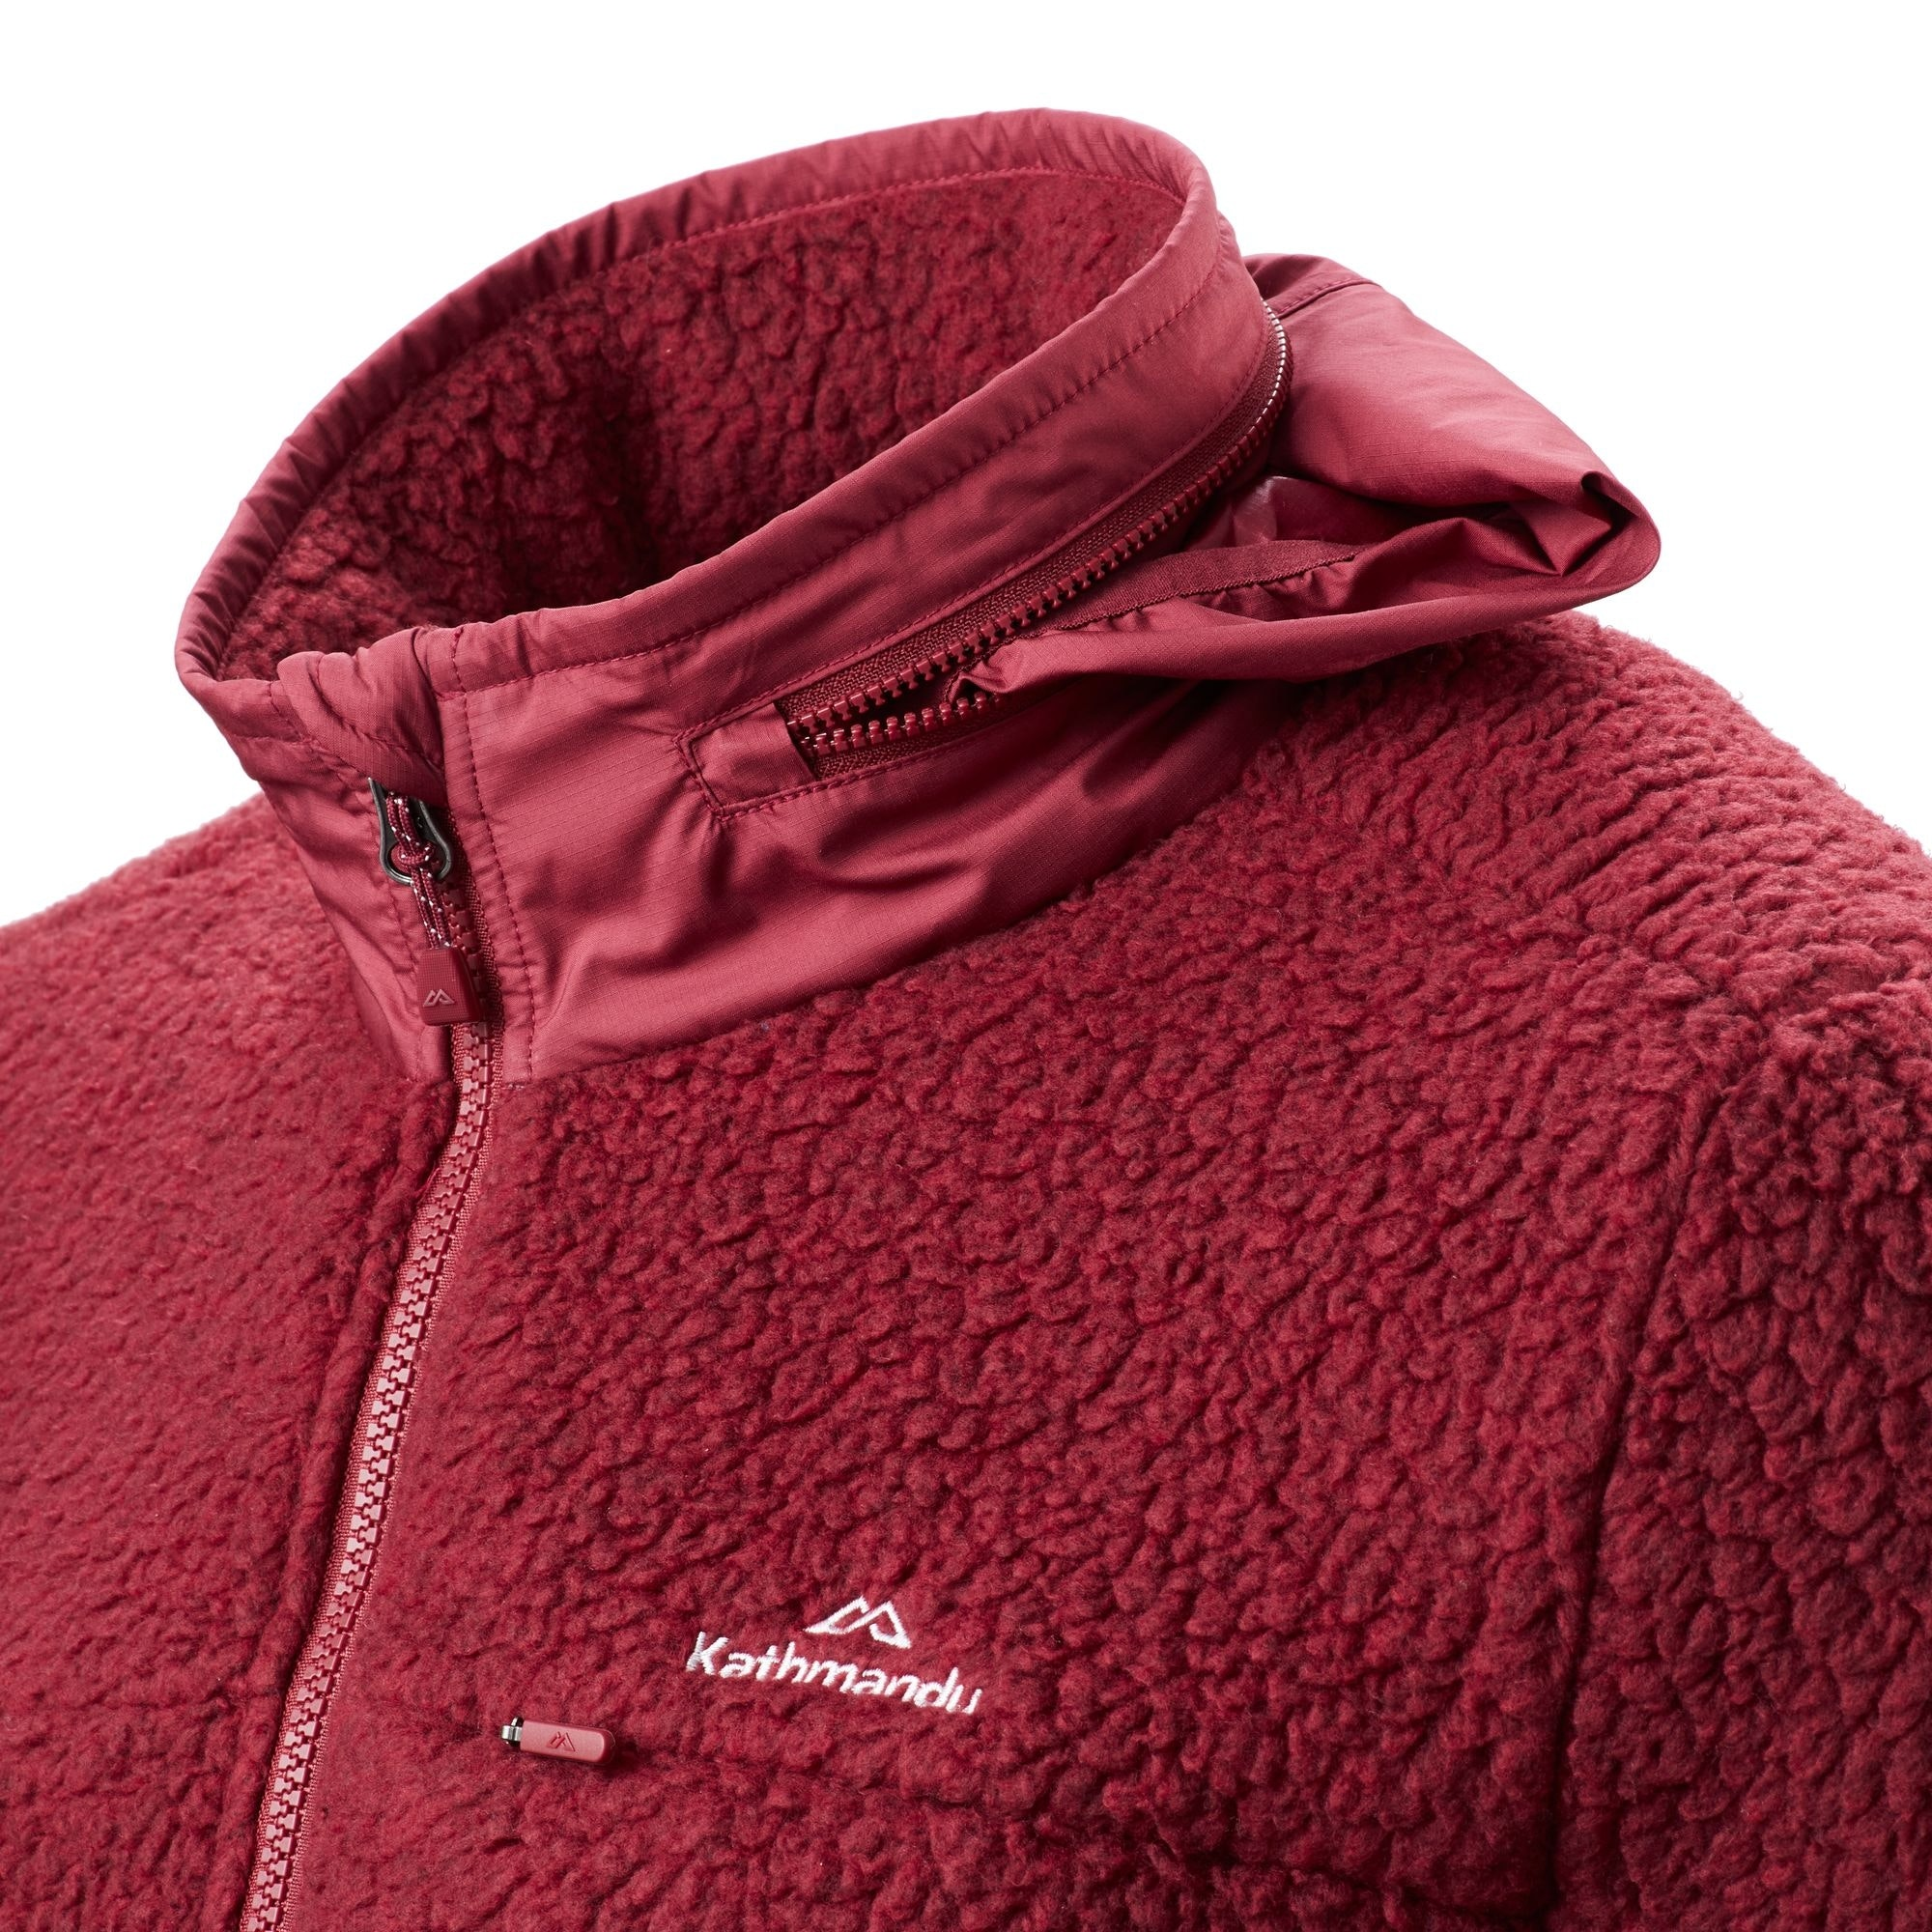 NEW-Kathmandu-Baffin-Island-Men-039-s-Full-Zip-Hooded-Warm-Outdoor-Fleece-Jacket thumbnail 19